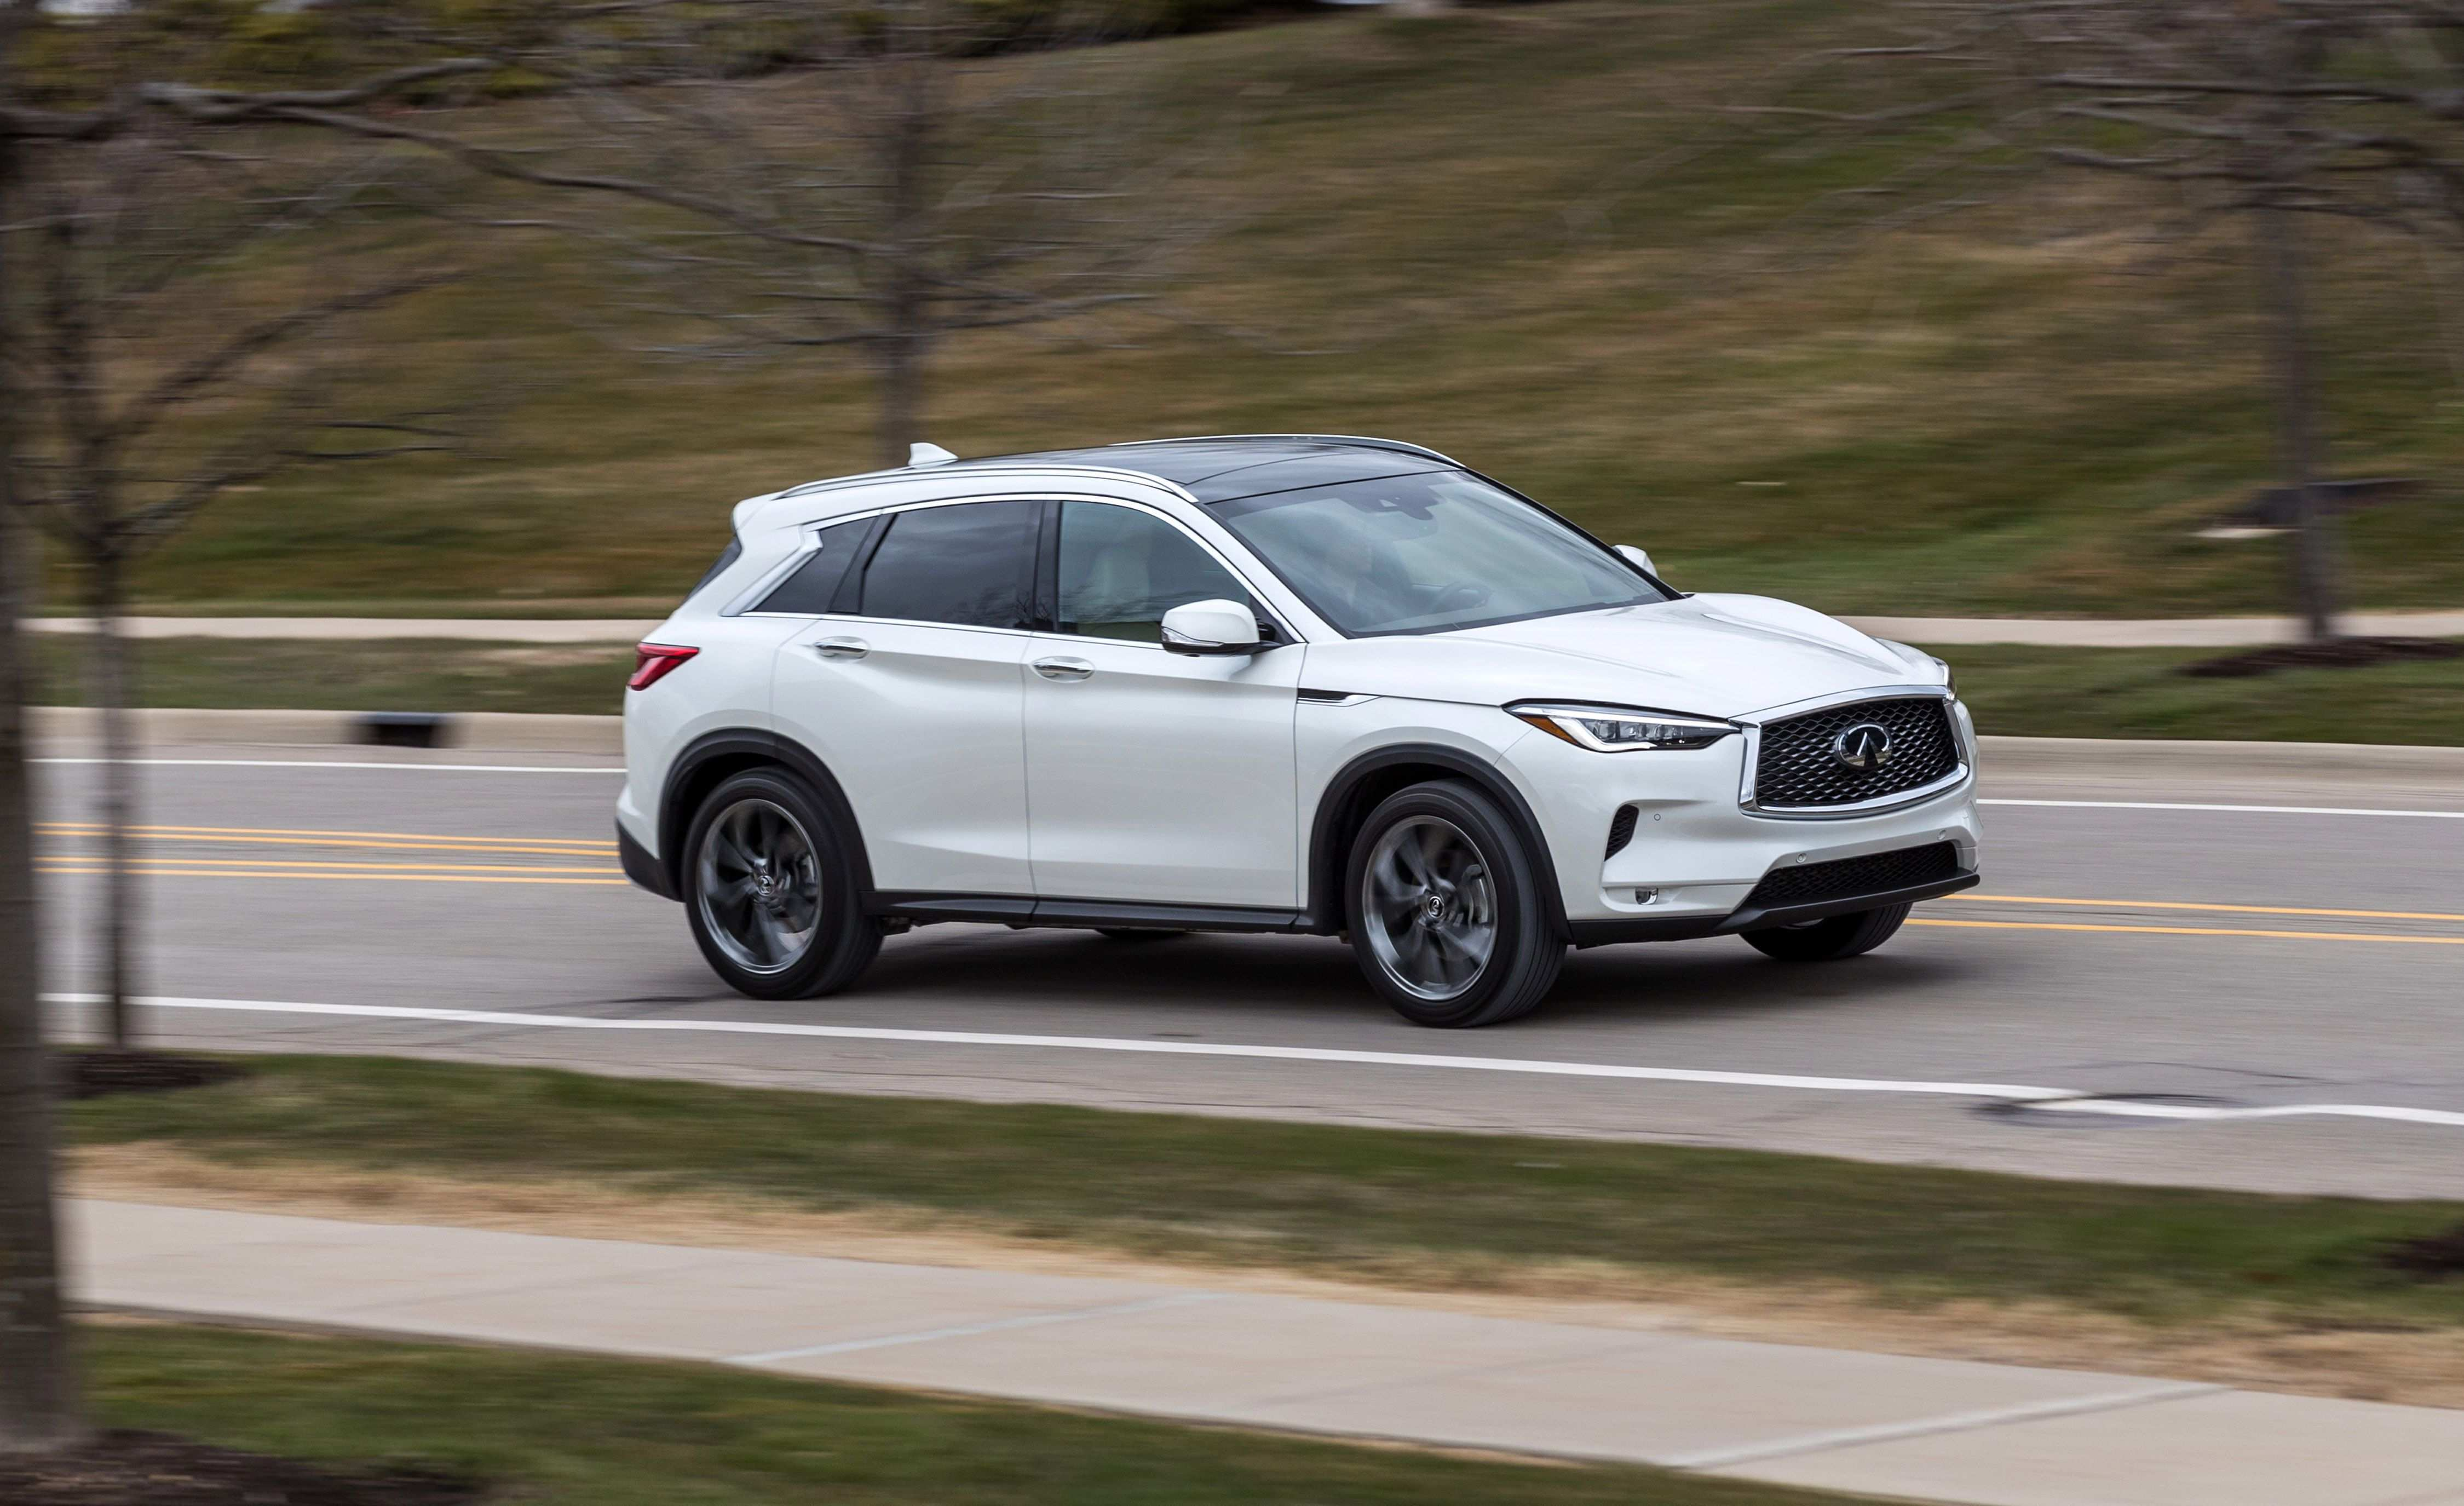 54 Best Review 2019 Infiniti Qx50 Redesign Spesification with 2019 Infiniti Qx50 Redesign